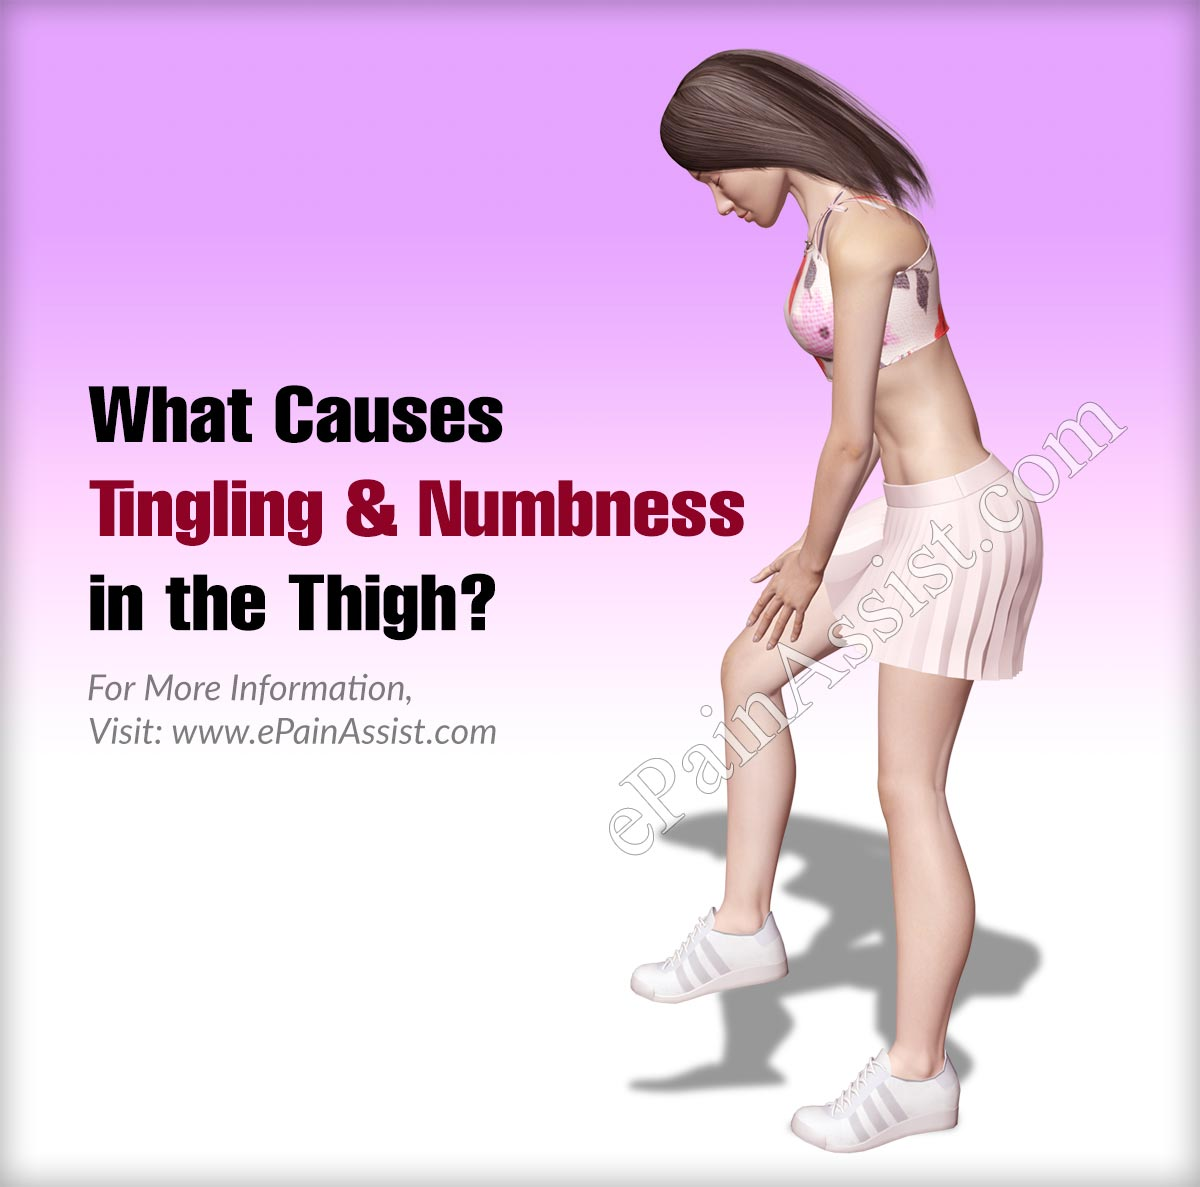 What Can Cause Tingling & Numbness In The Thigh?